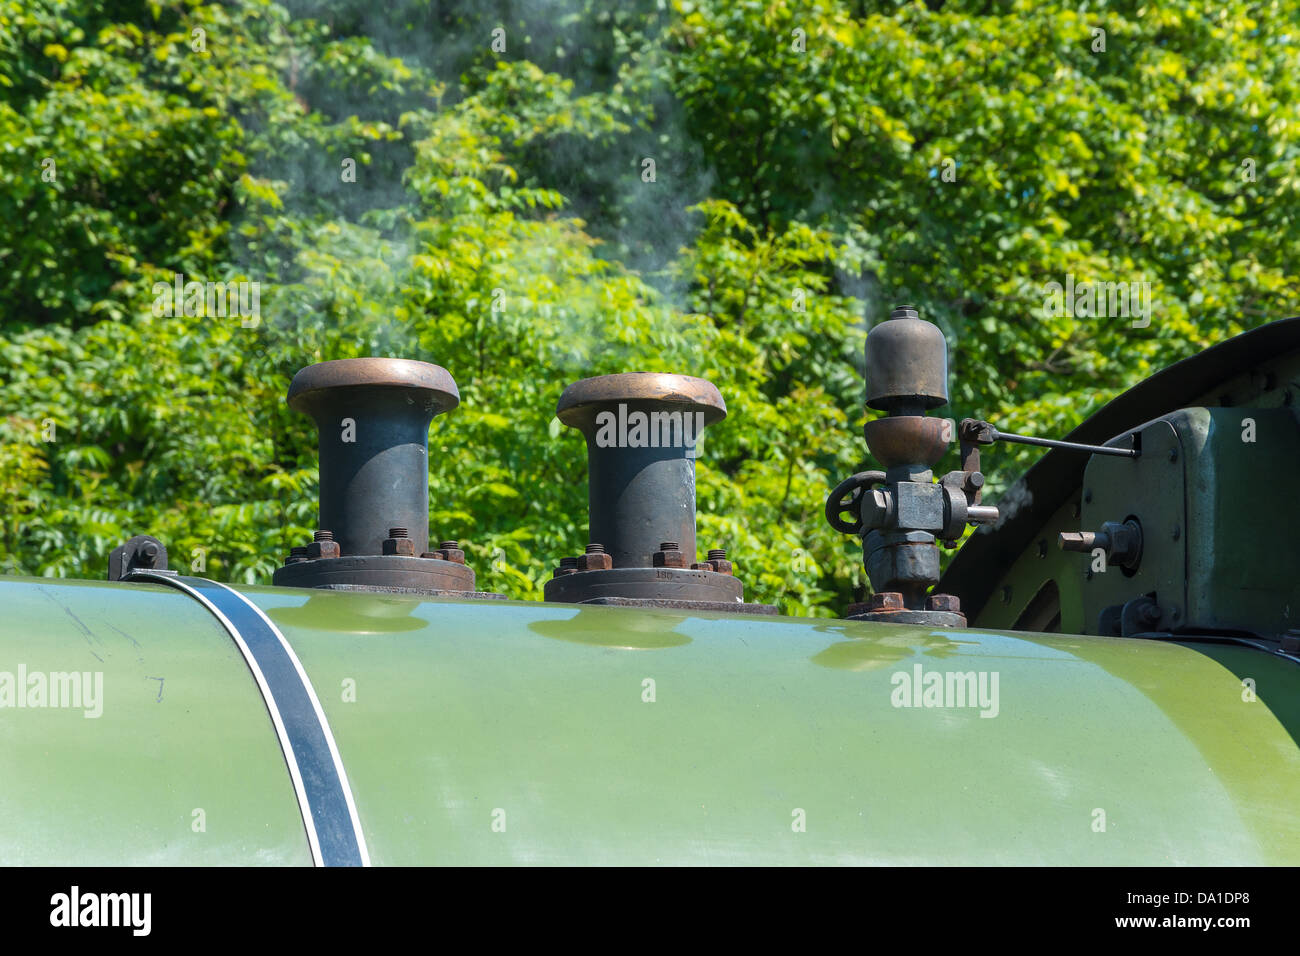 Vintage locomotive steam governor. - Stock Image